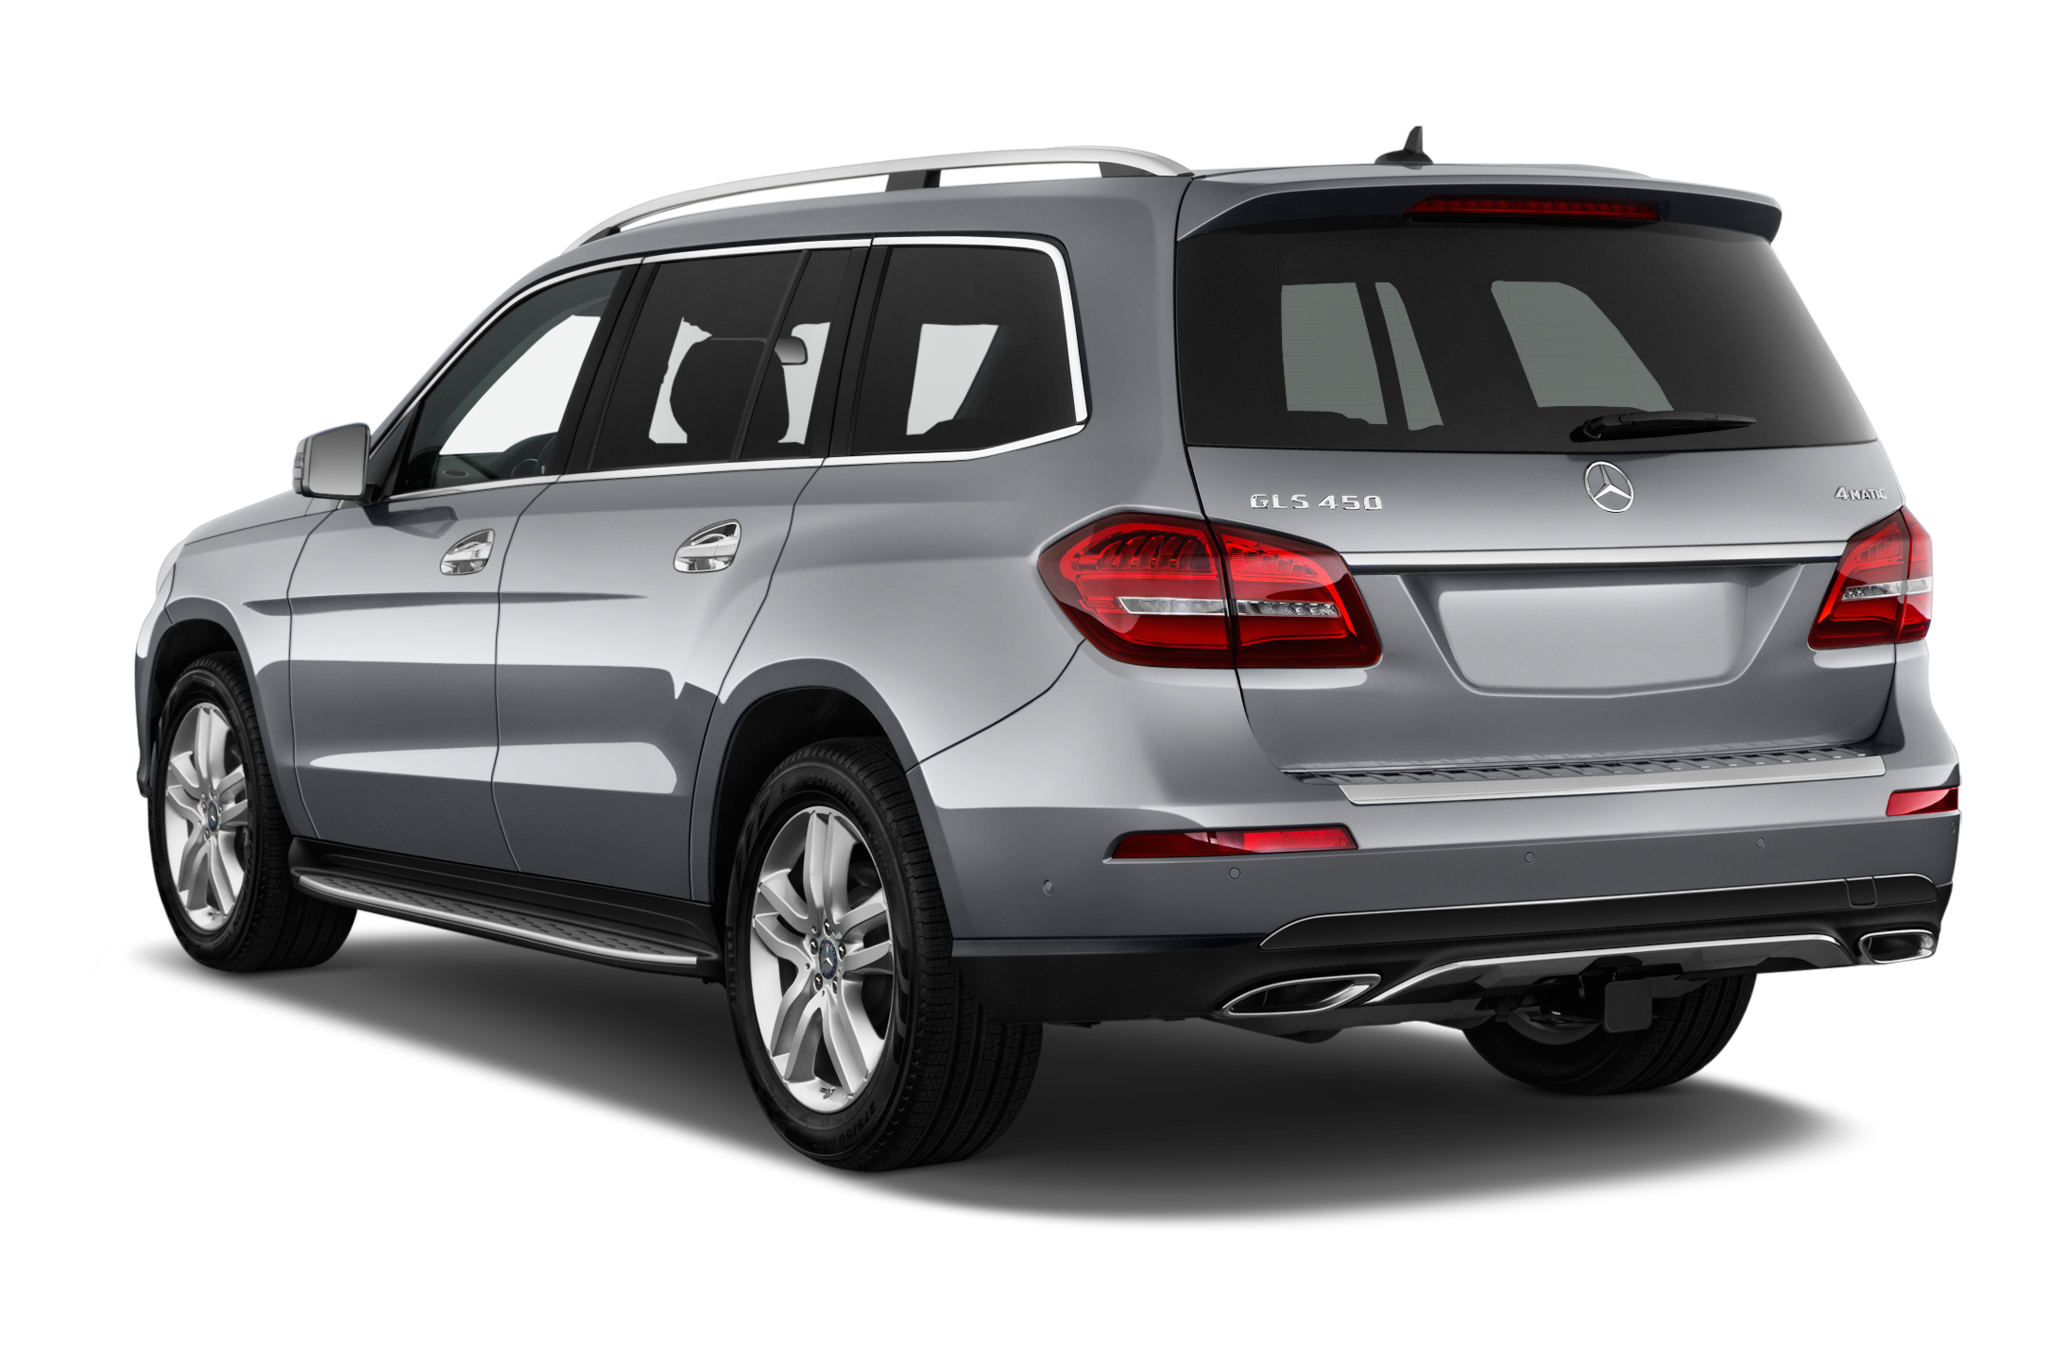 2017 mercedes benz suv pictures to pin on pinterest for Mercedes benz suv 450